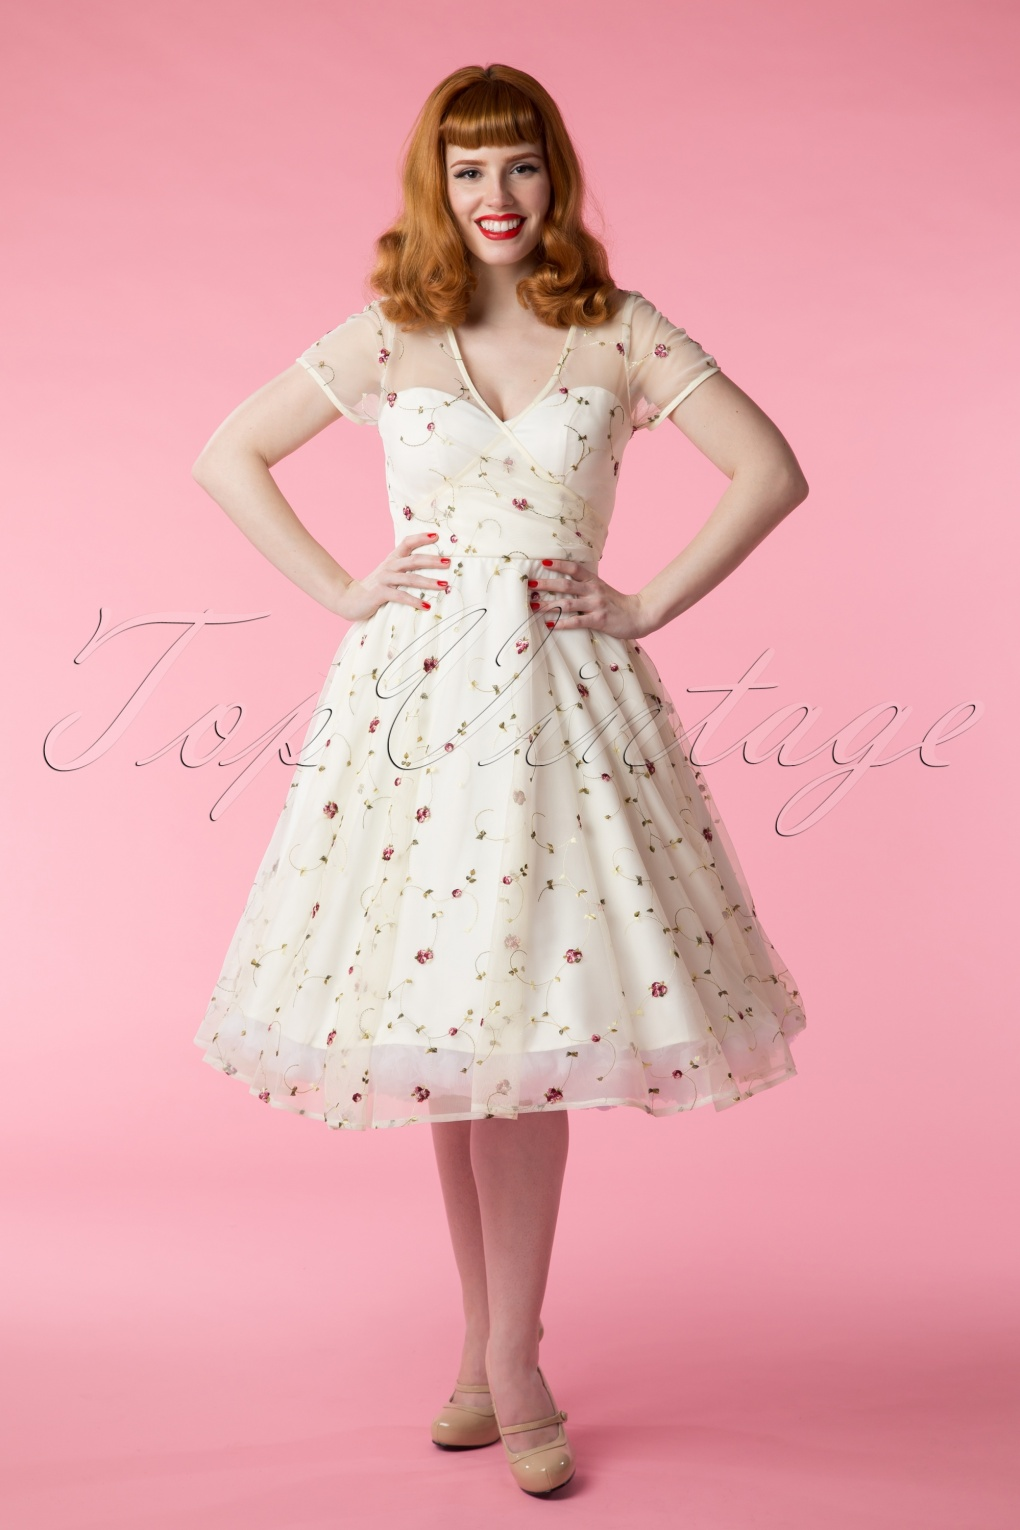 Vintage plus size dresses uk pictures